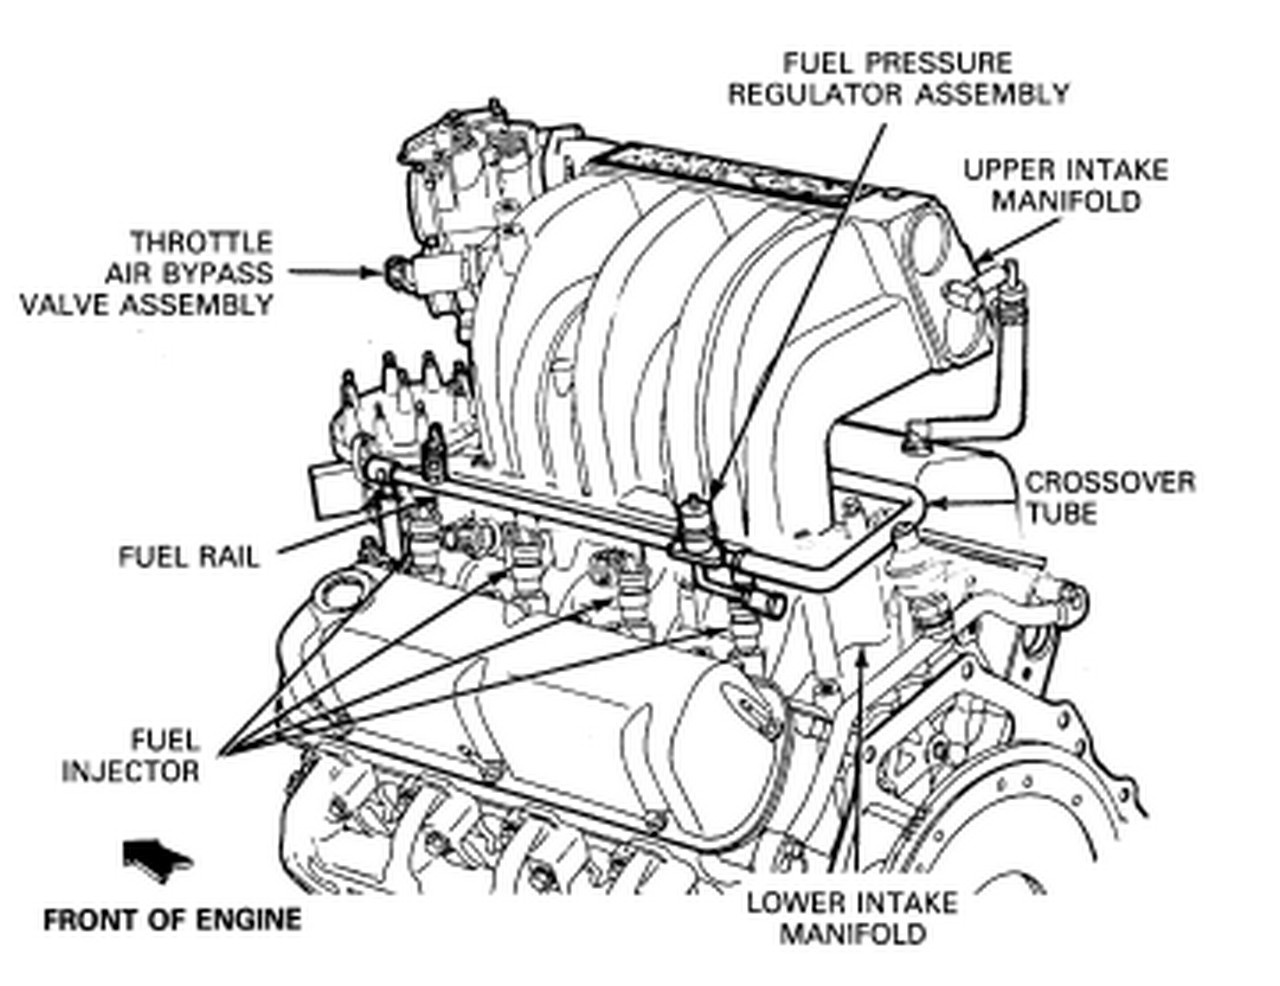 97 ford explorer fuel filter diagram